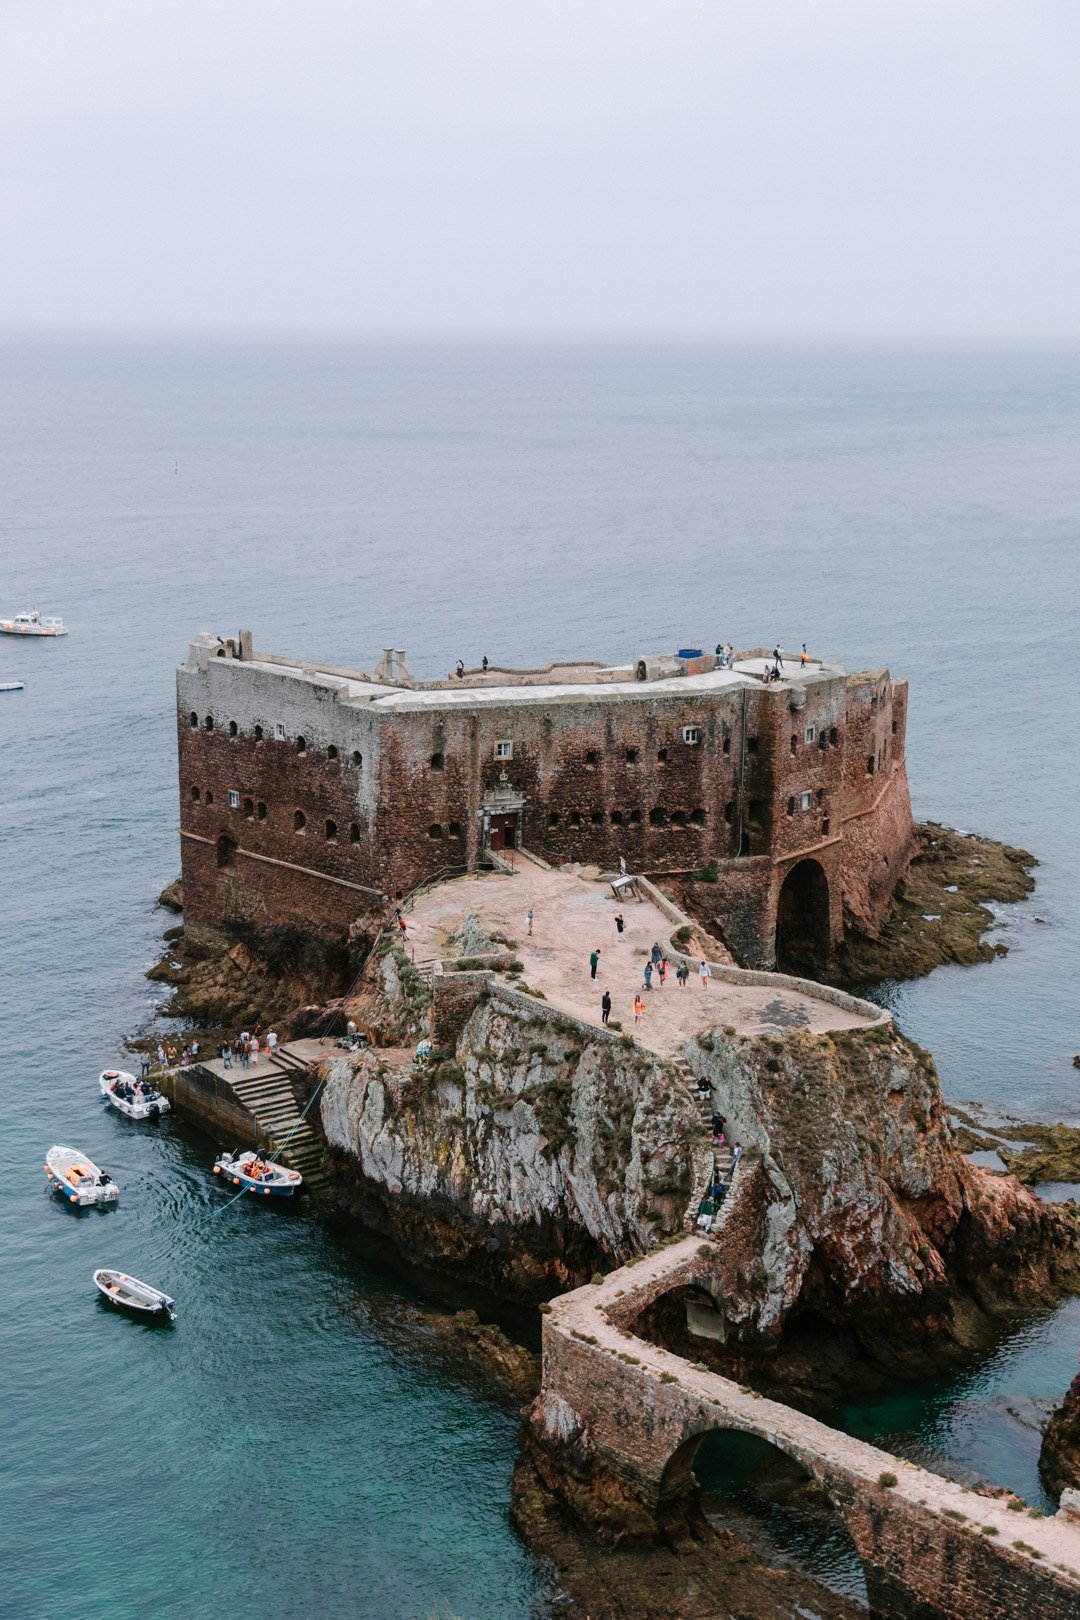 A view of the São João Baptista Fortress from on top of the cliff with people walking on the water passage and fishing boats on the Portugal island Berlenga Grande